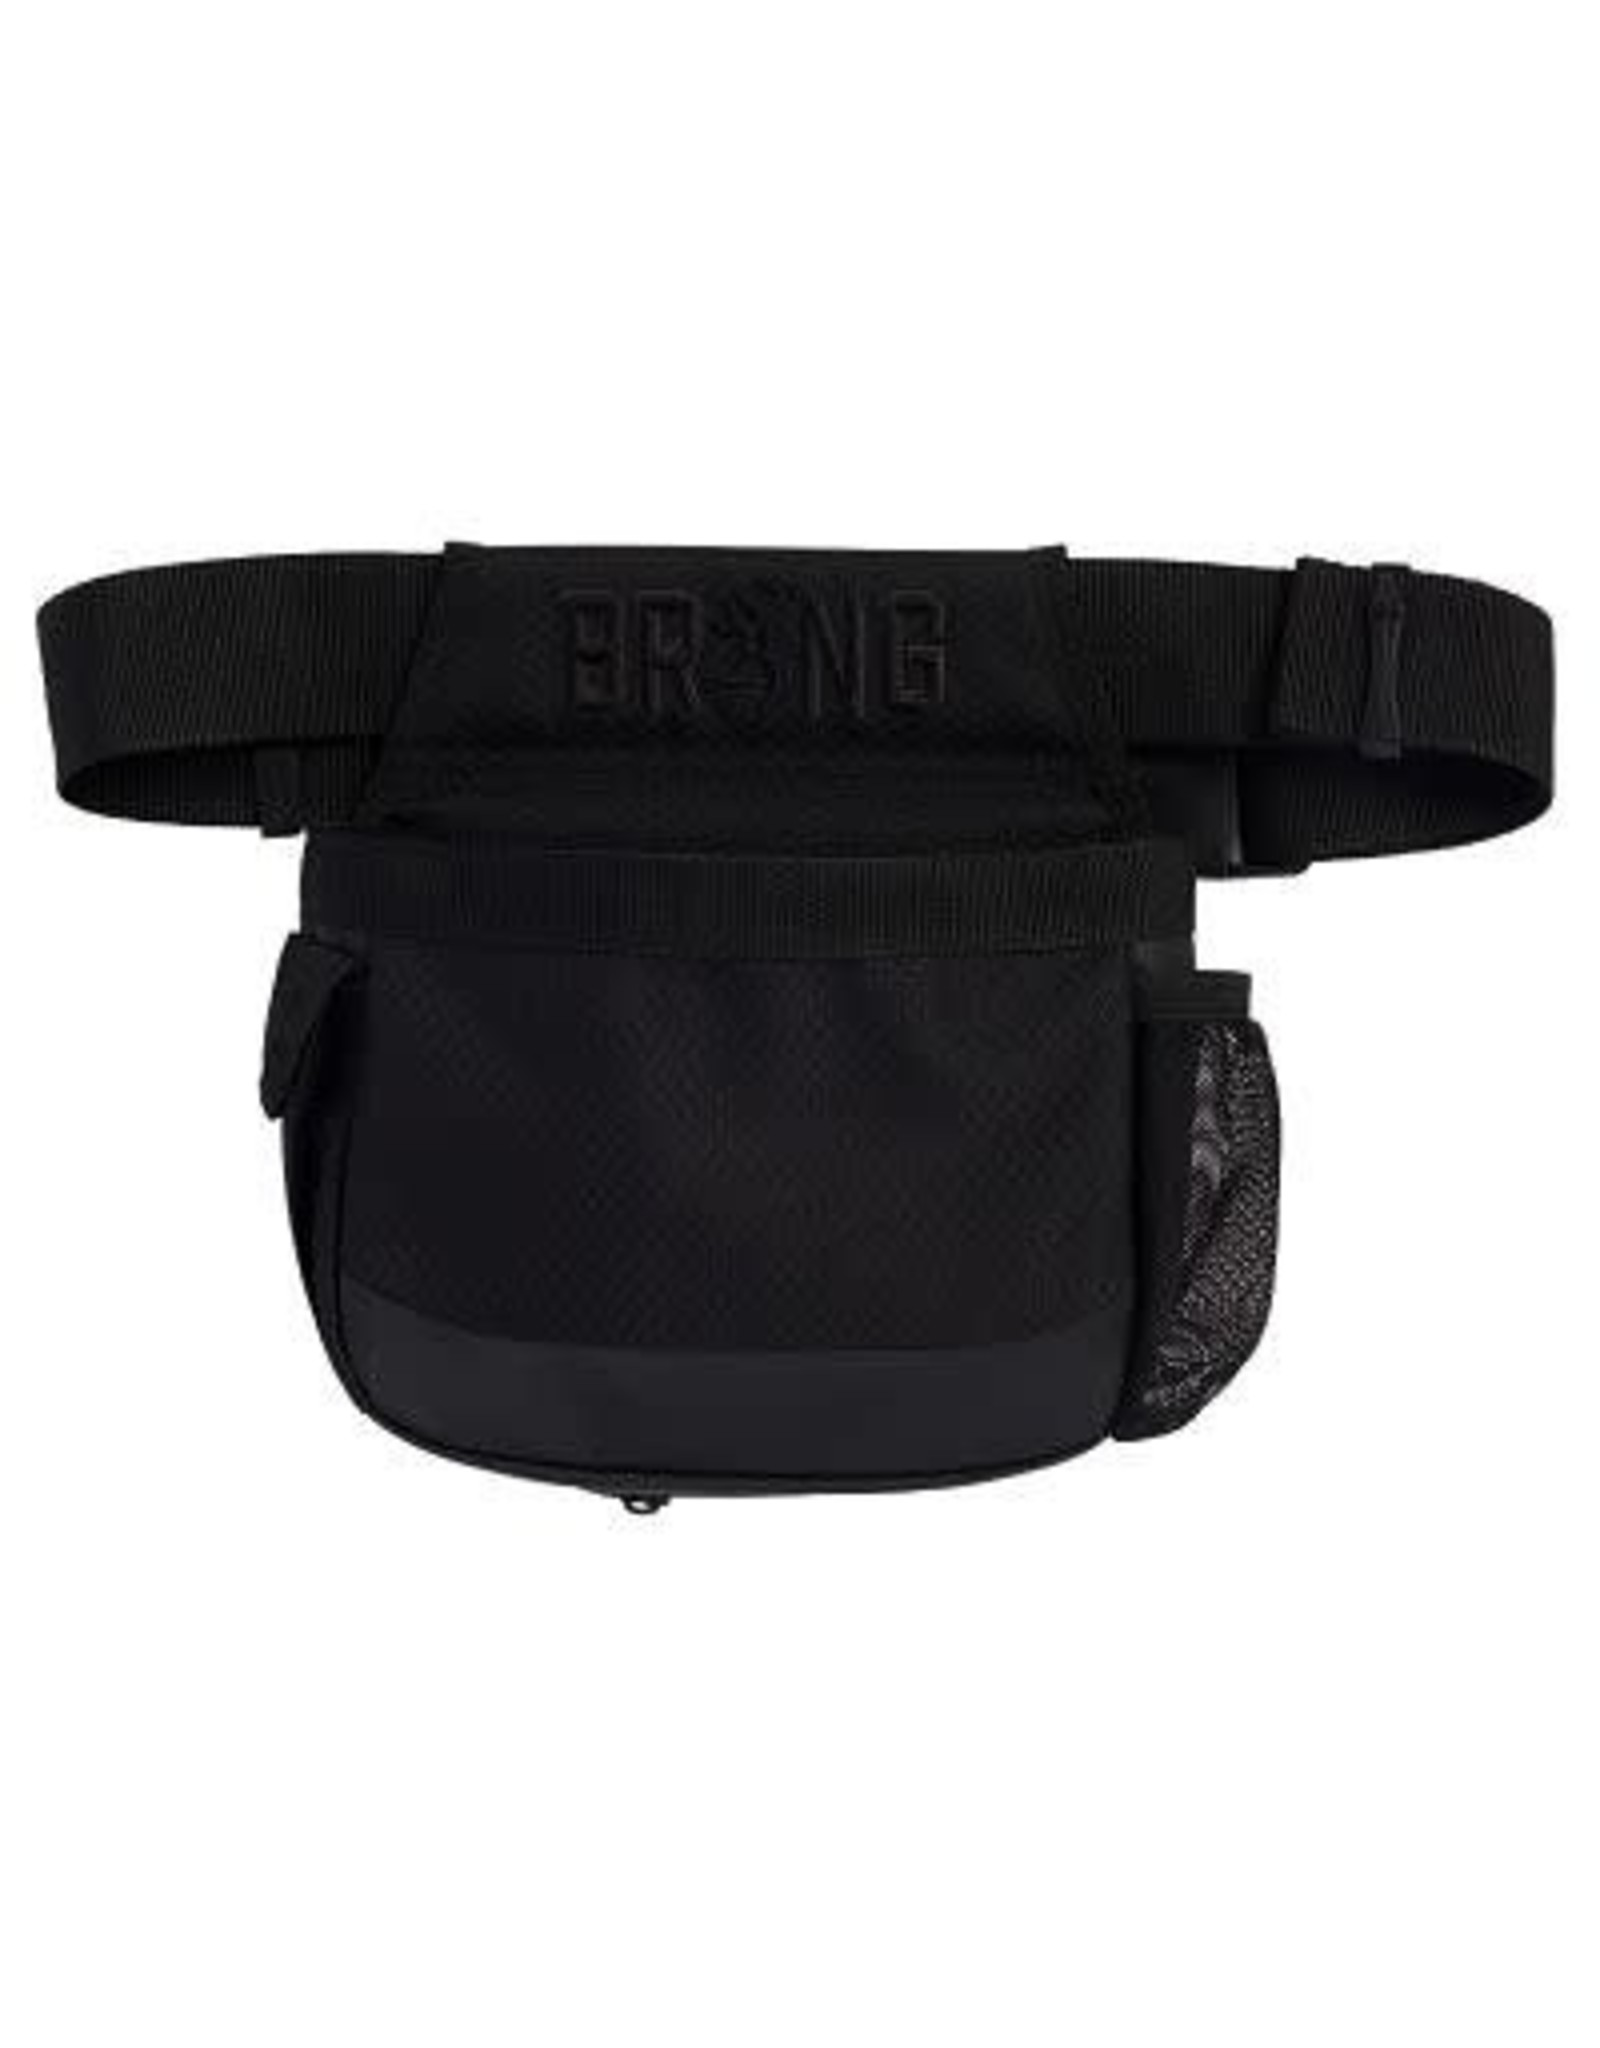 Browning BRNG Belted Shell Pouch